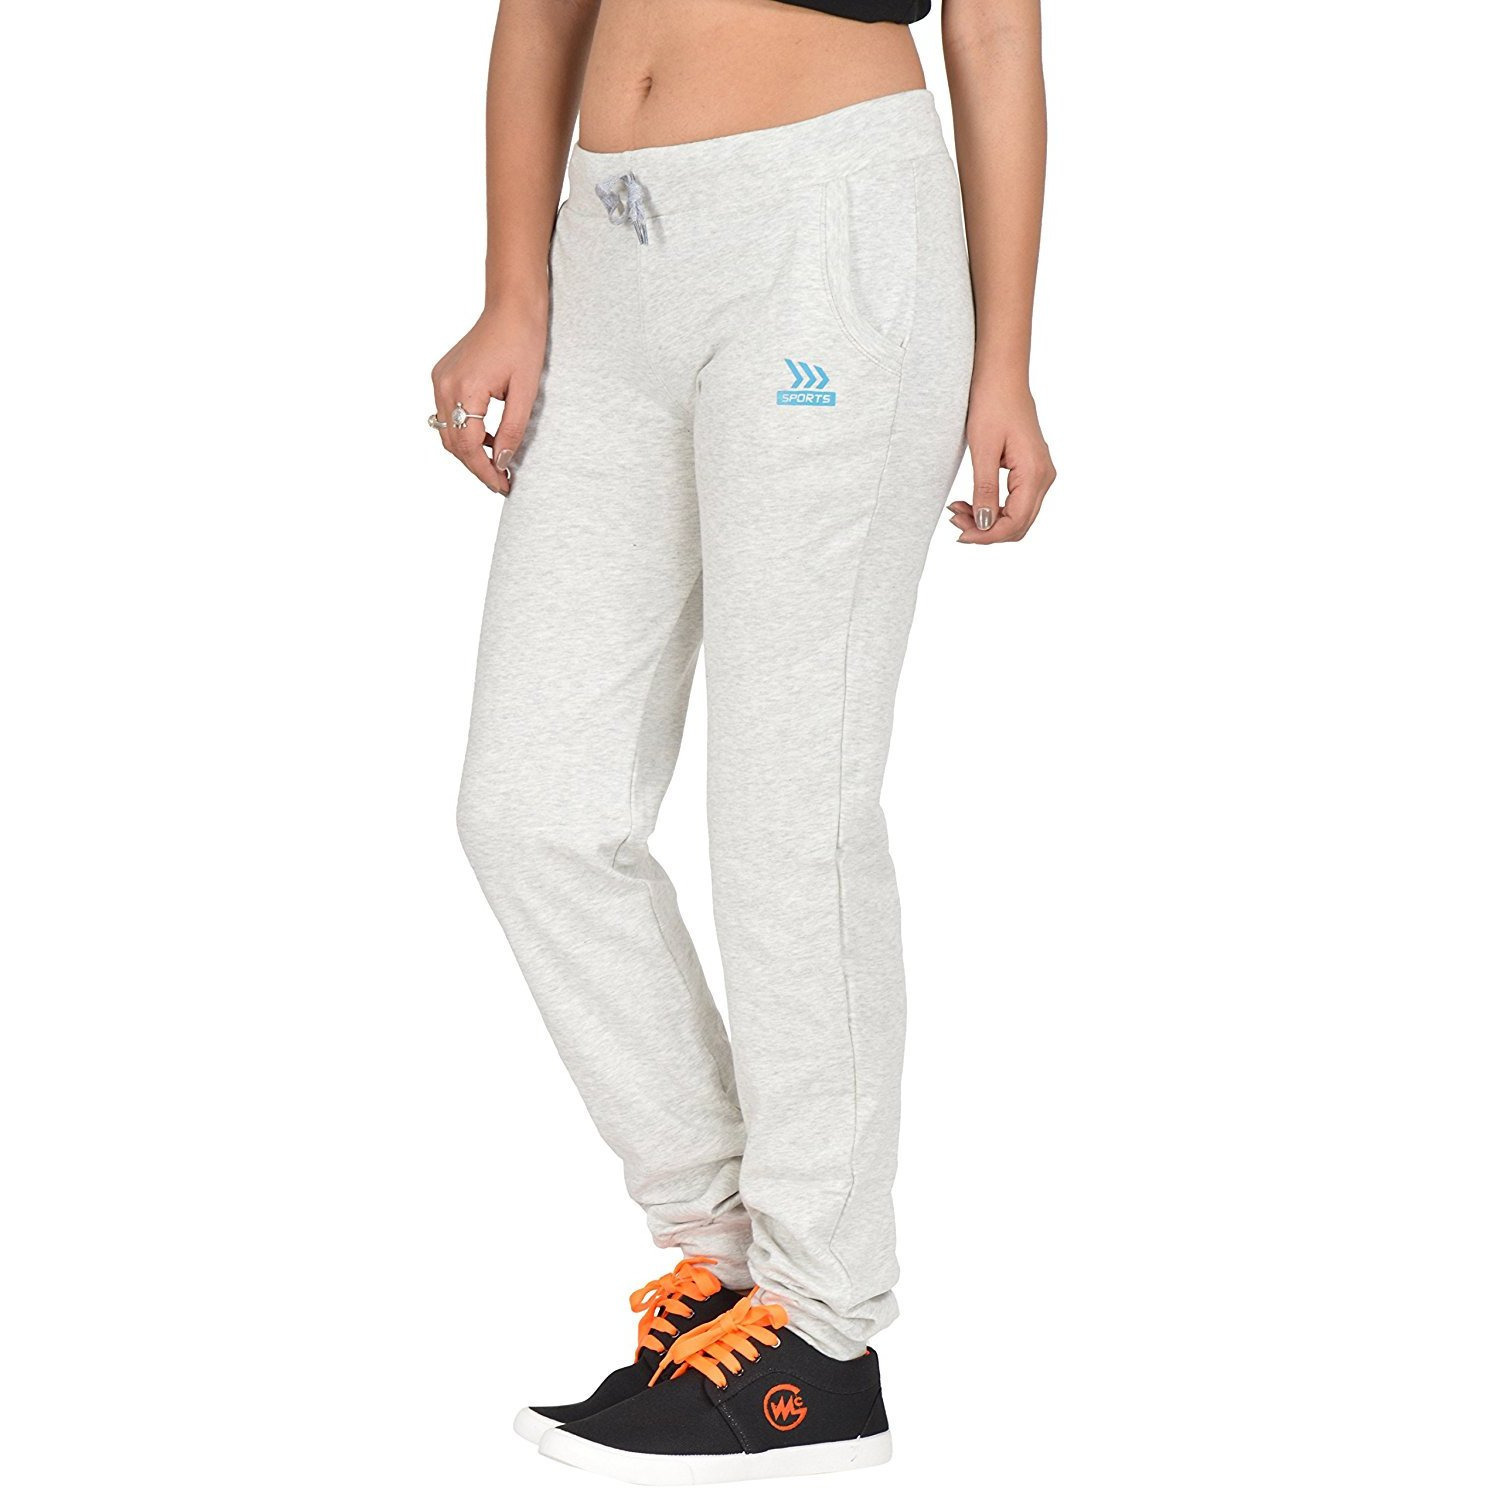 Be You Cotton Hoisery Navy-Grey Women Trackpants Combo pack of 2